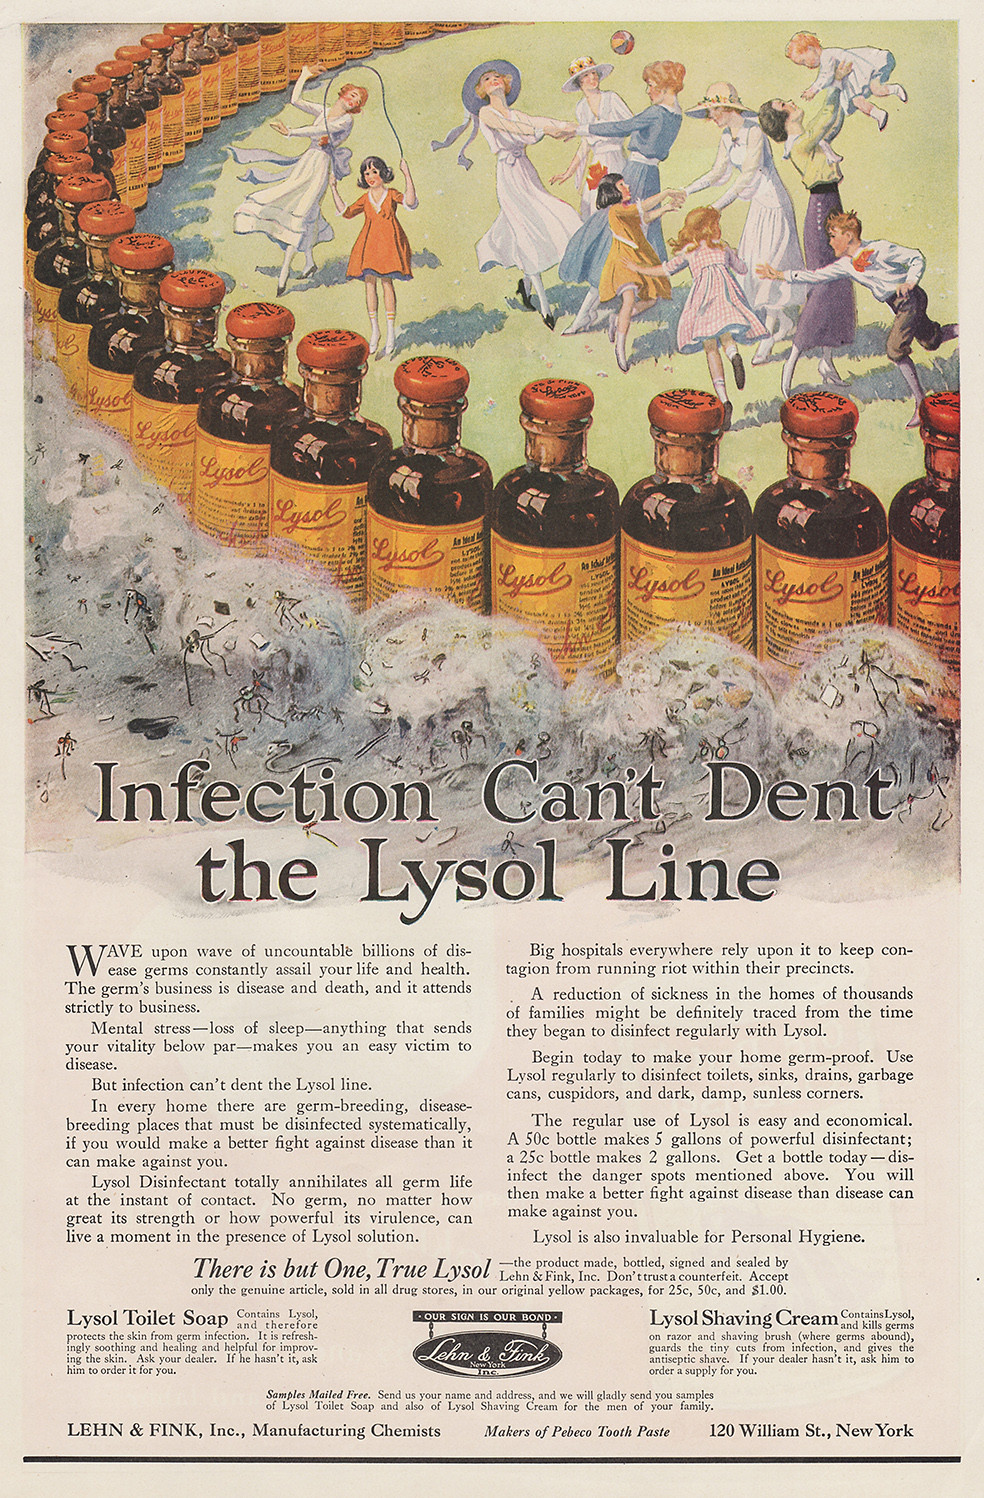 Infection can't dent the Lysol line